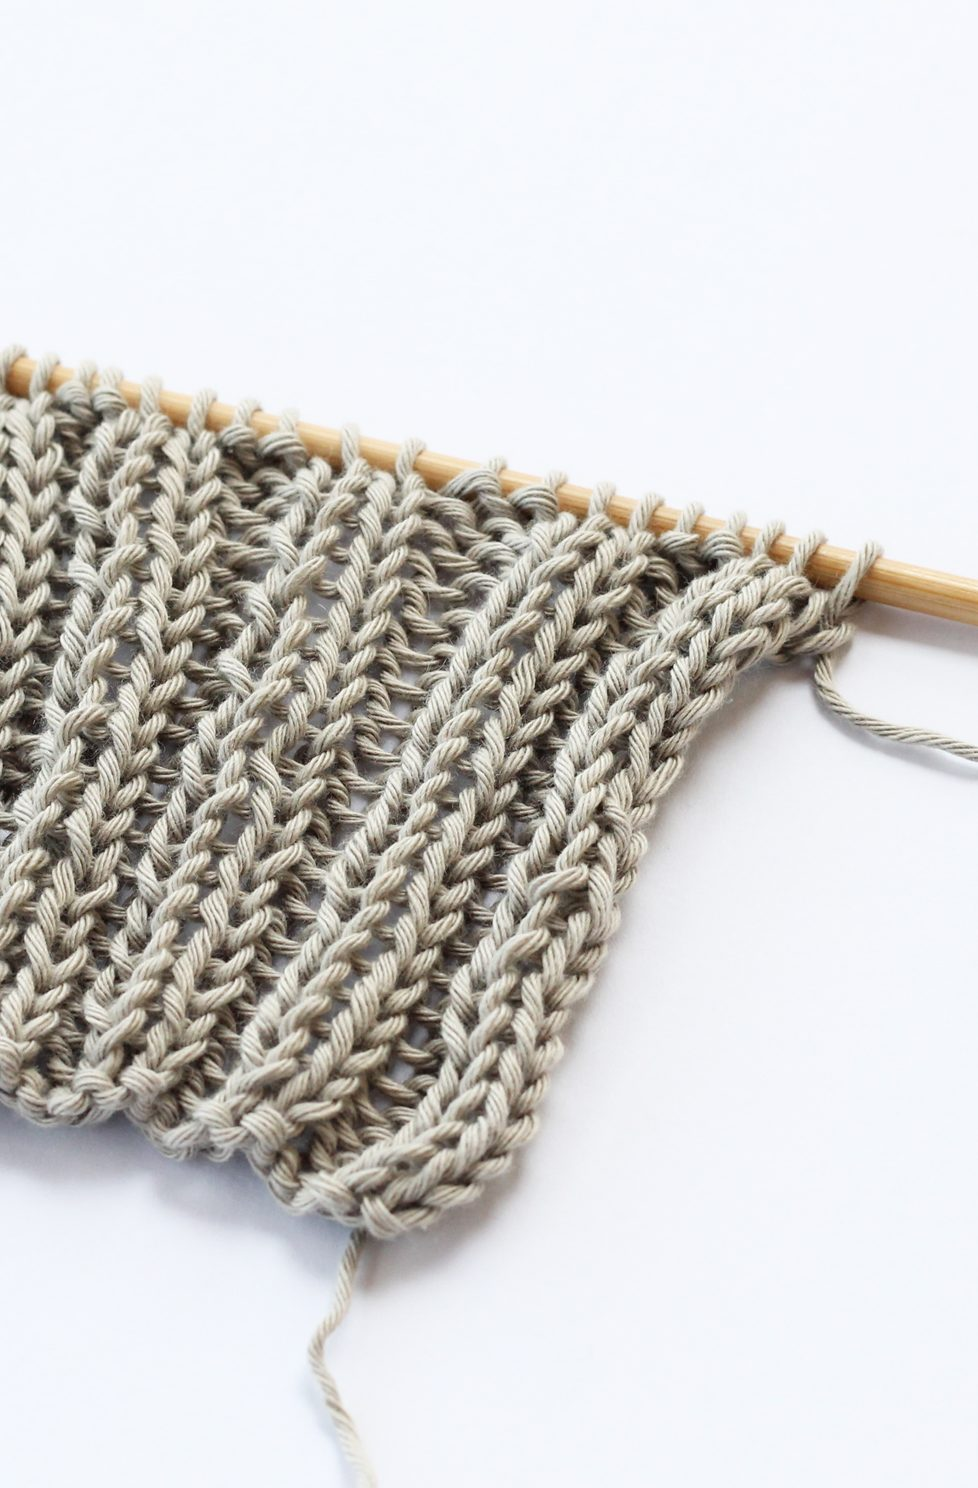 12 Simple Knitting Stitches For Beginners